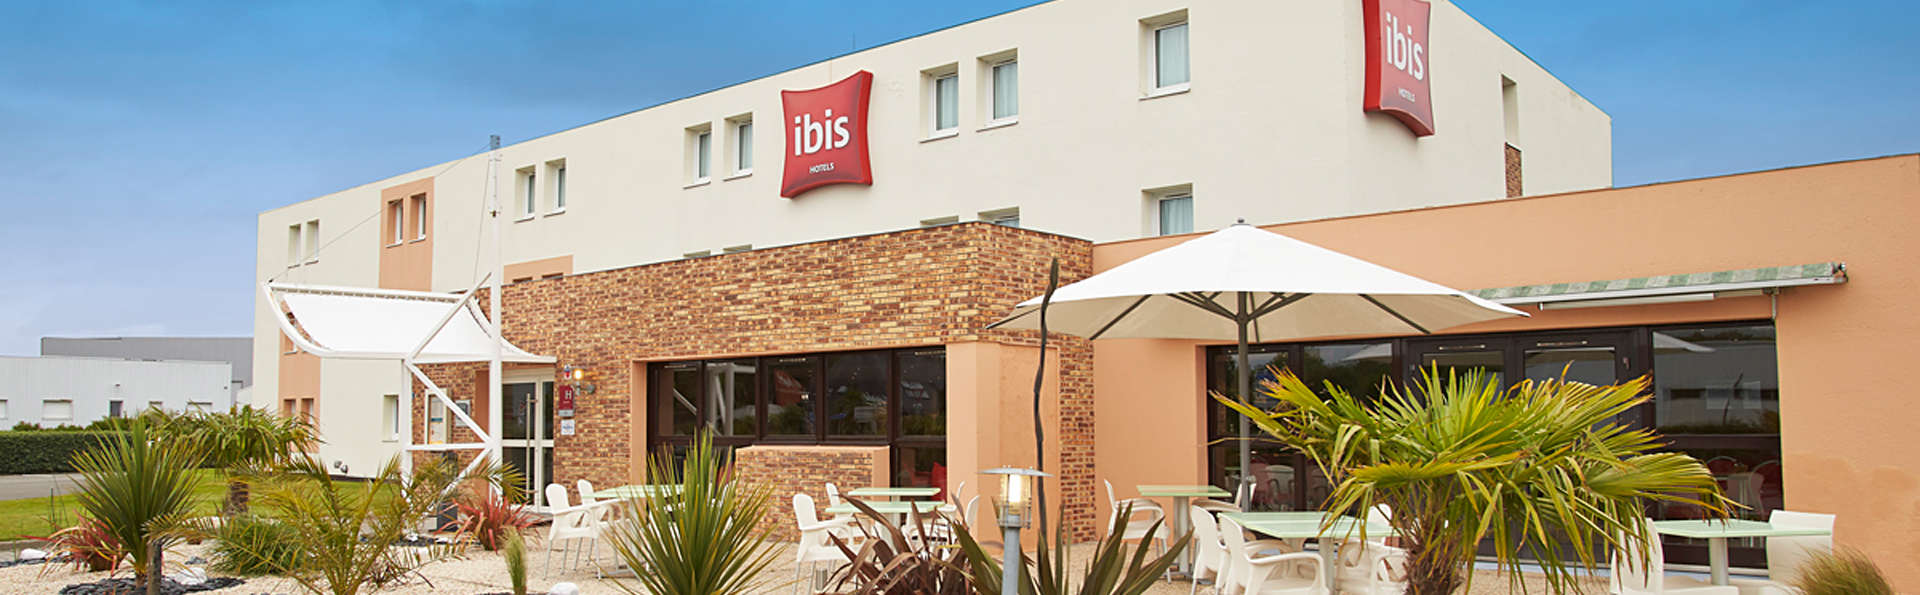 Hôtel Ibis Auray - edit_front1.jpg